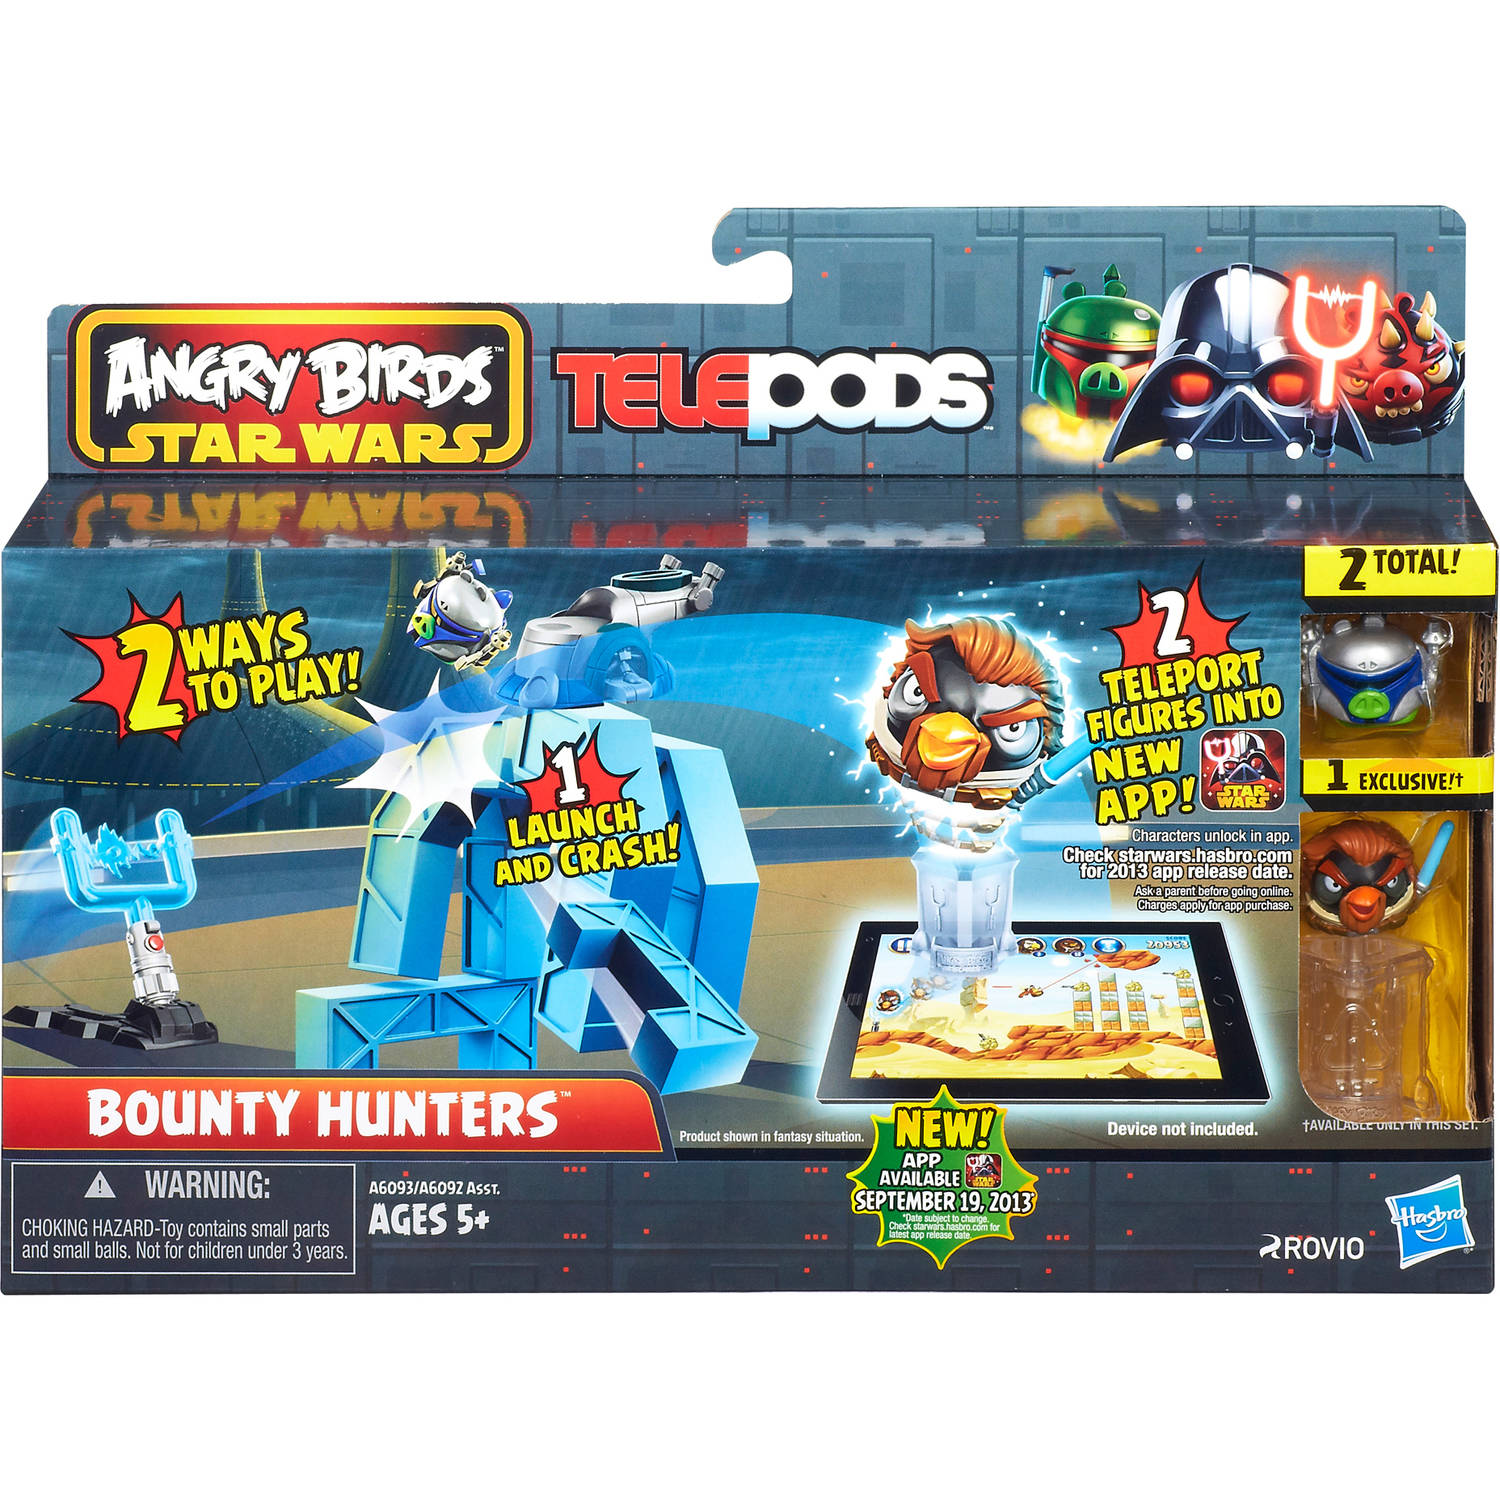 Angry Birds Star Wars Telepods Bounty Hunters Set